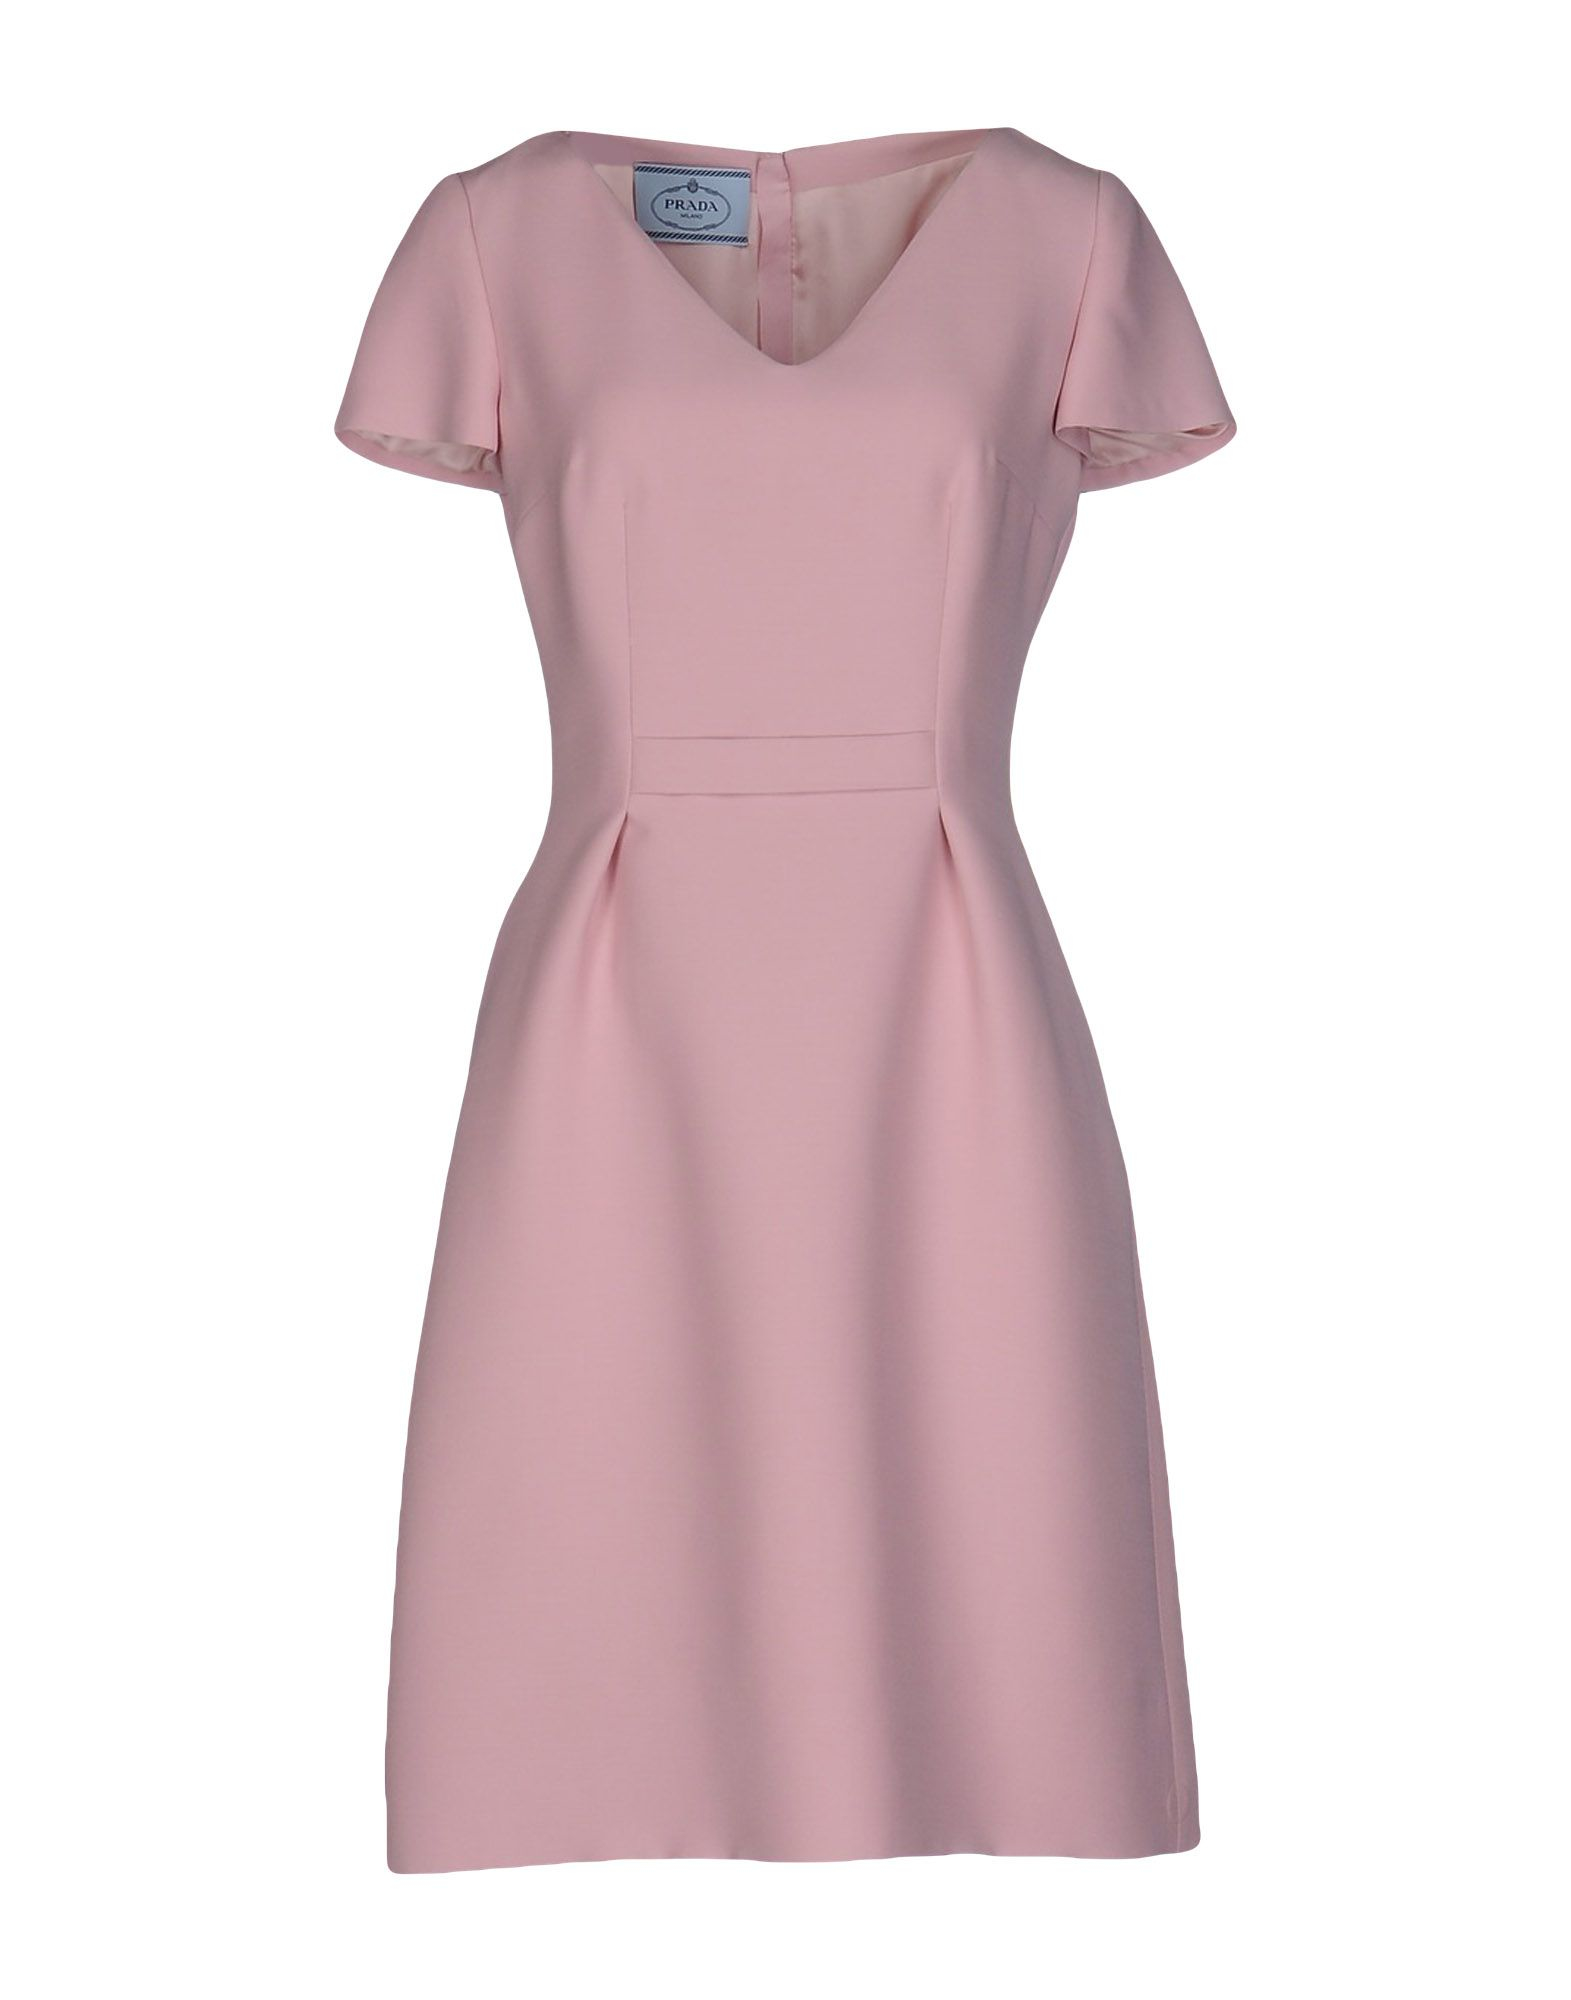 Prada short dress in blue lyst Pink fashion and style pink dress